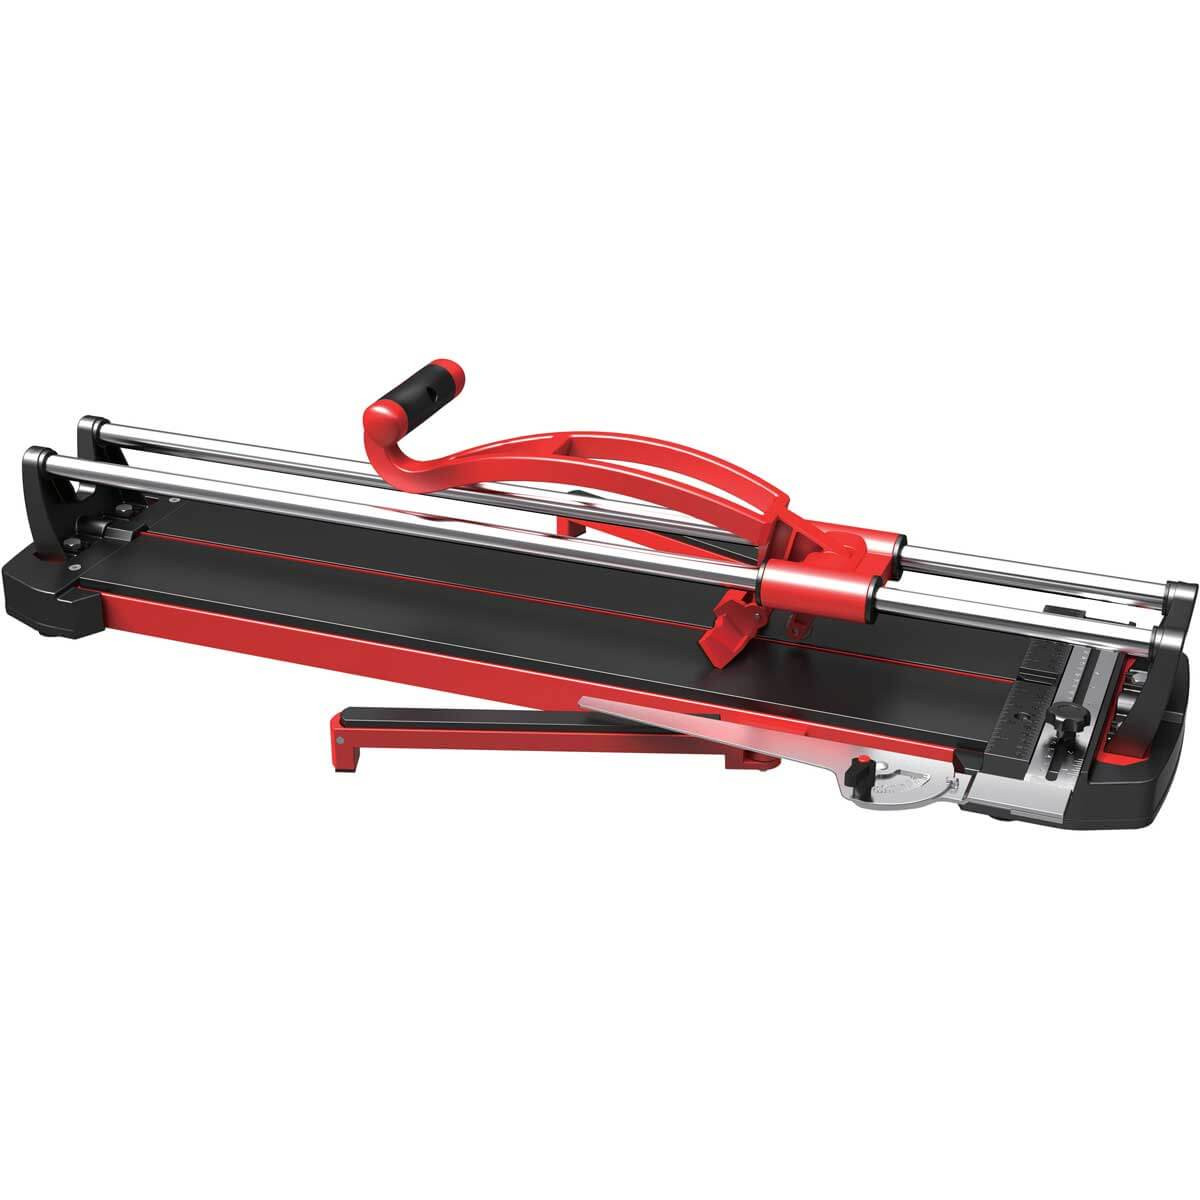 Wishbone tile Cutter side